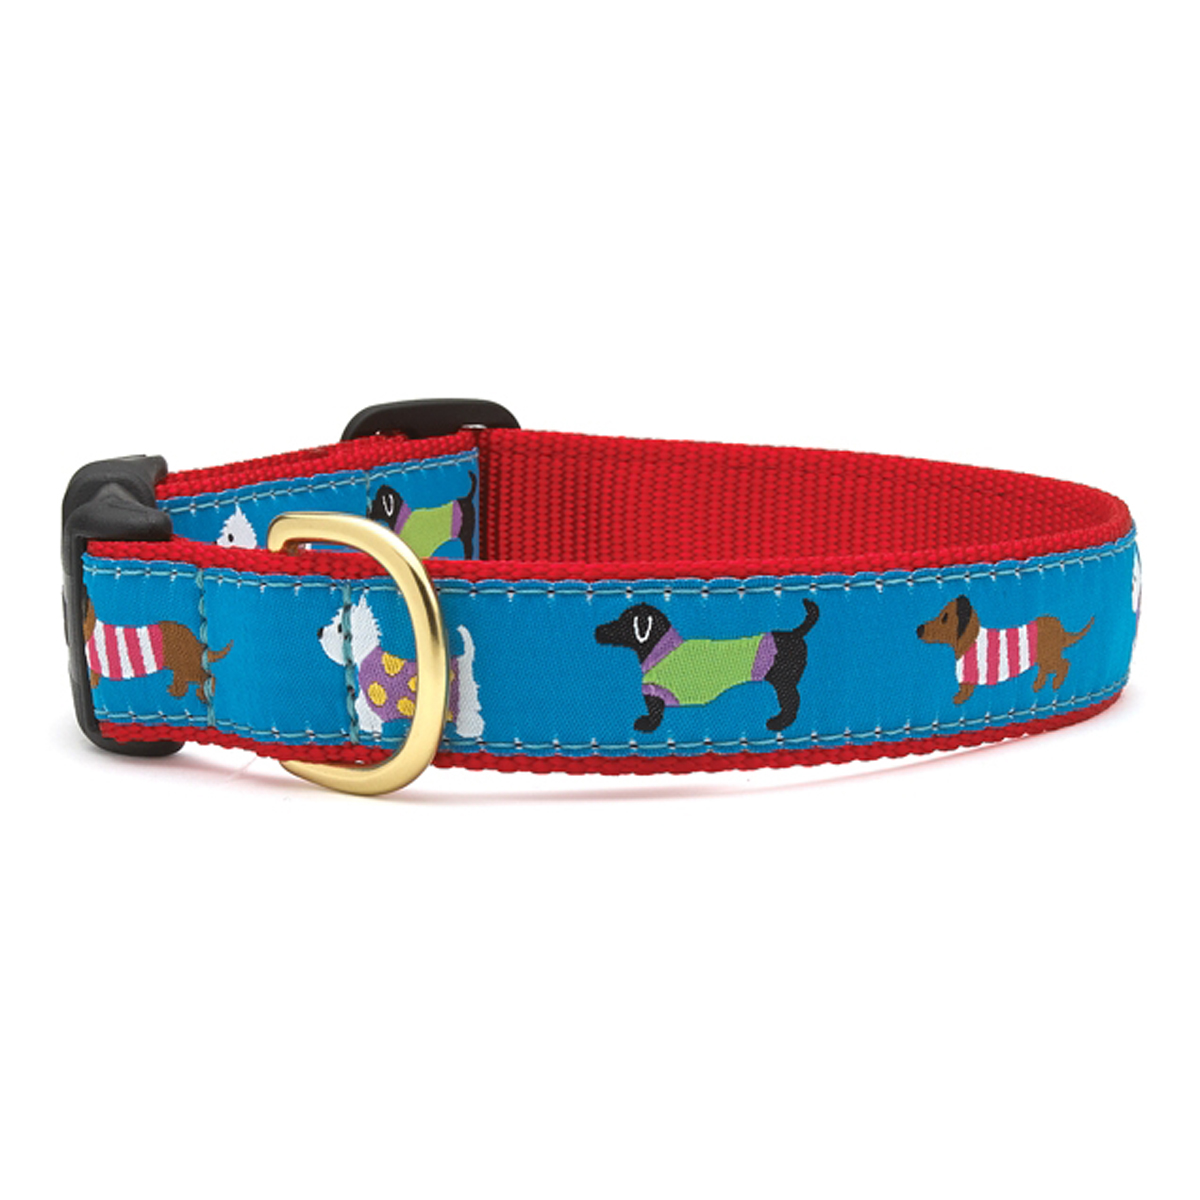 Puttin' on the Knits Dog Collar by Up Country